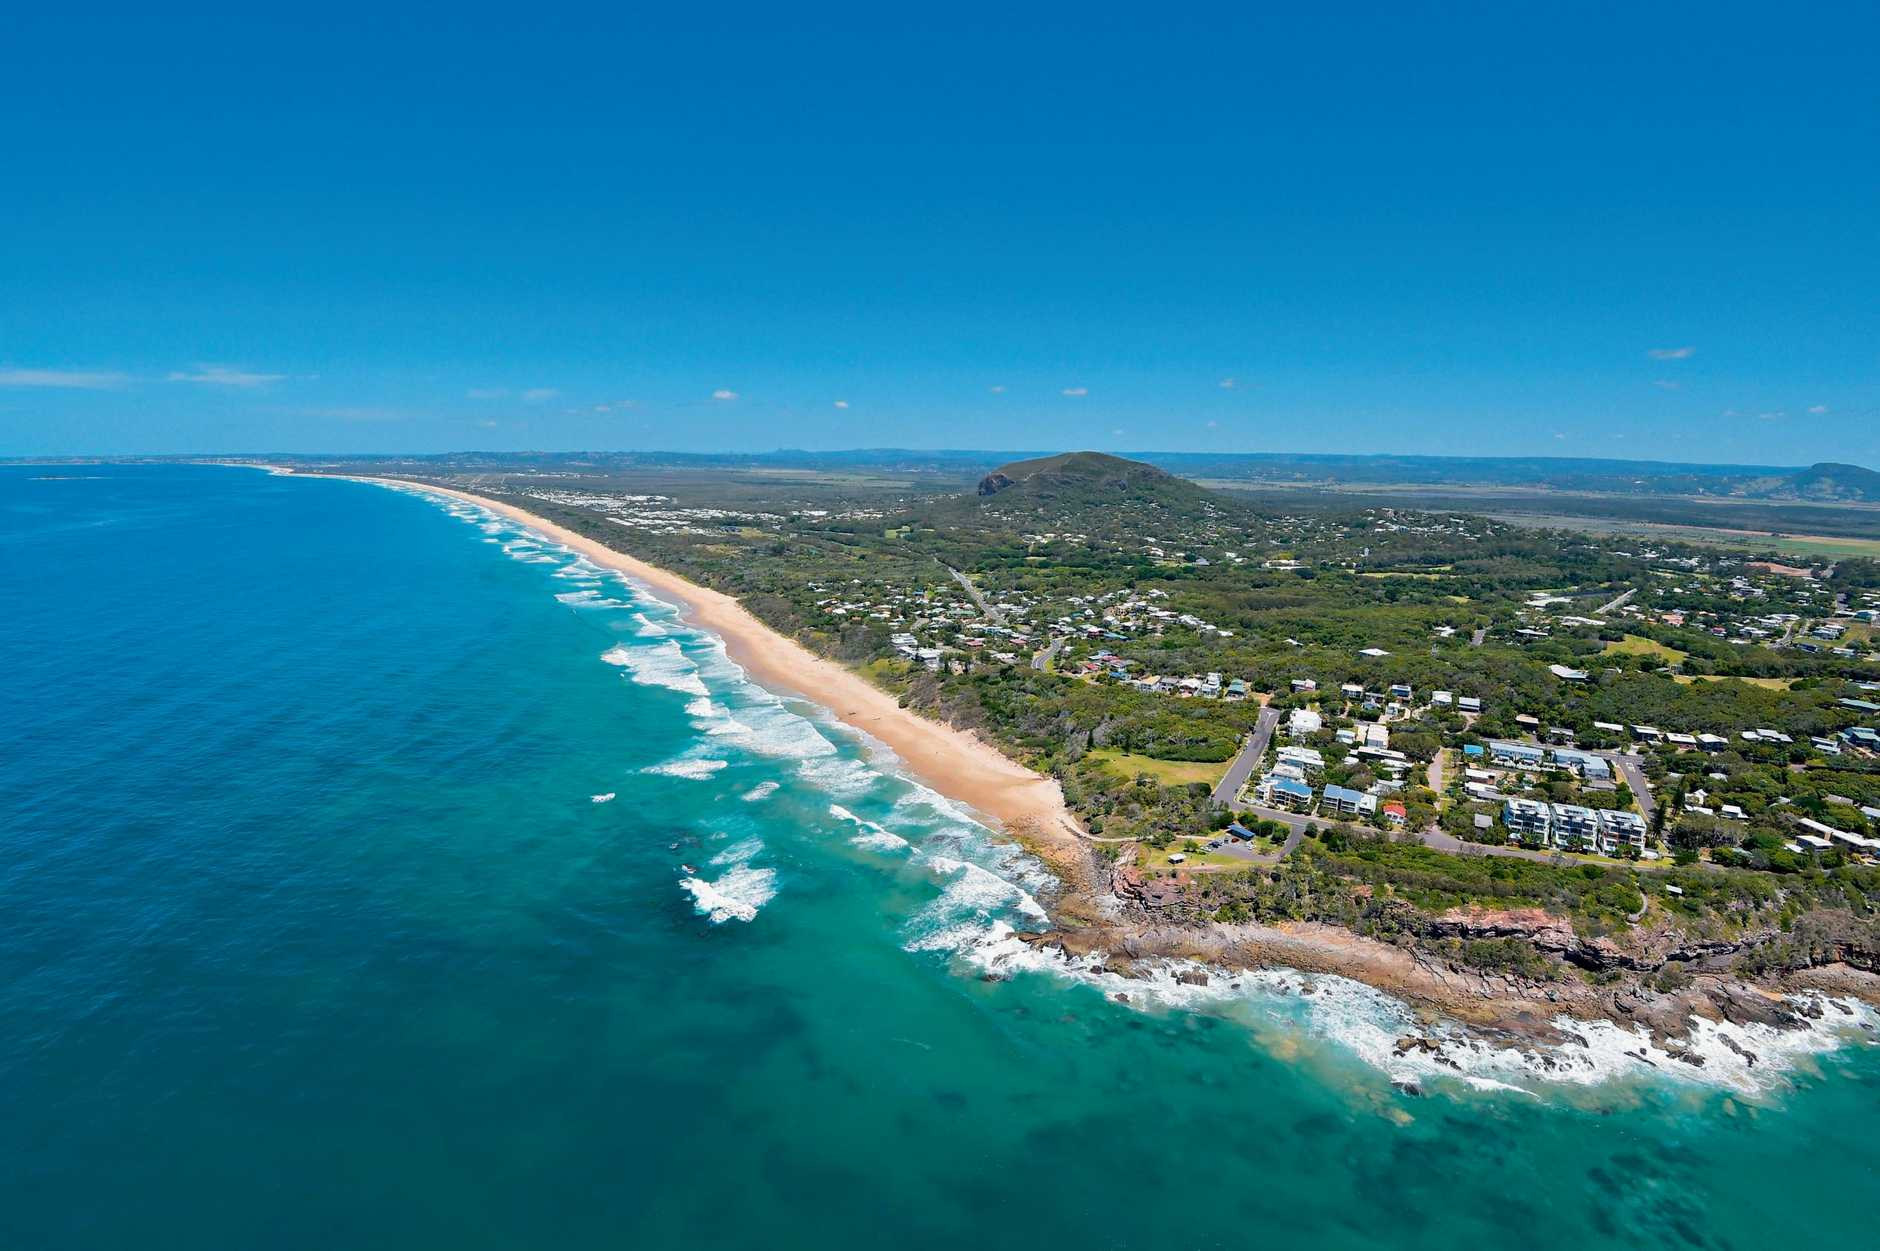 Aerials of the Sunshine Coast taken on Thursday 23 October, 2014 for advertising feature:Point Arkwright at Yaroomba. Mount Coolum and Palmer Coolum Resort in background. Also the site of the proposed Sekisui development.Photo: Brett Wortman / Sunshine Coast Daily